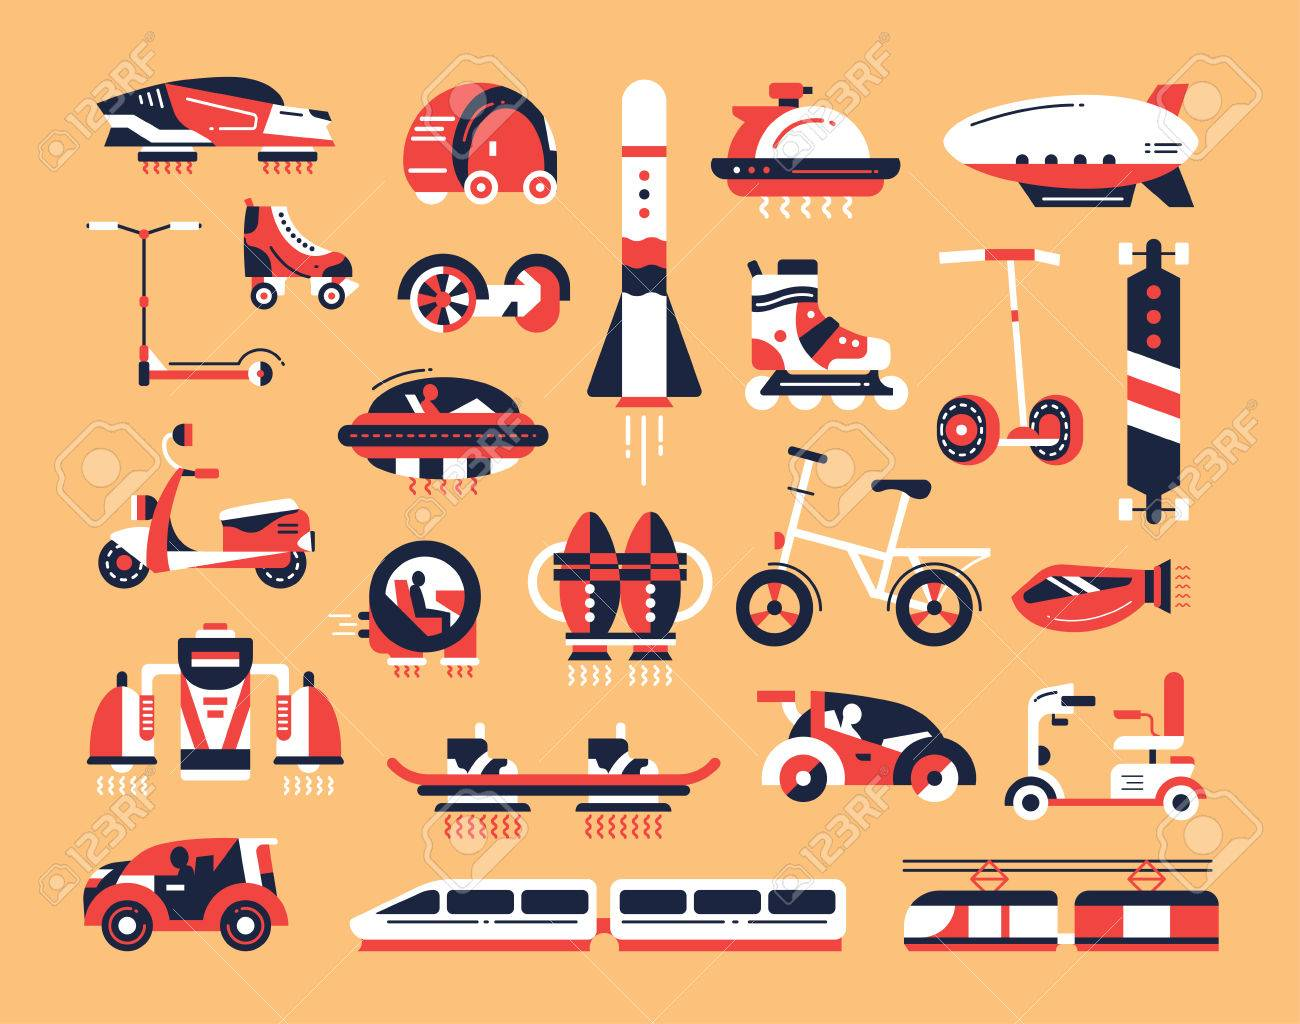 Means of transport - set of modern vector flat design icons and pictograms. Road, air, futuristic, etro, rocket, train, vehicle, electric car, skateboard, hoverboard scooter bicycle airship - 66760597